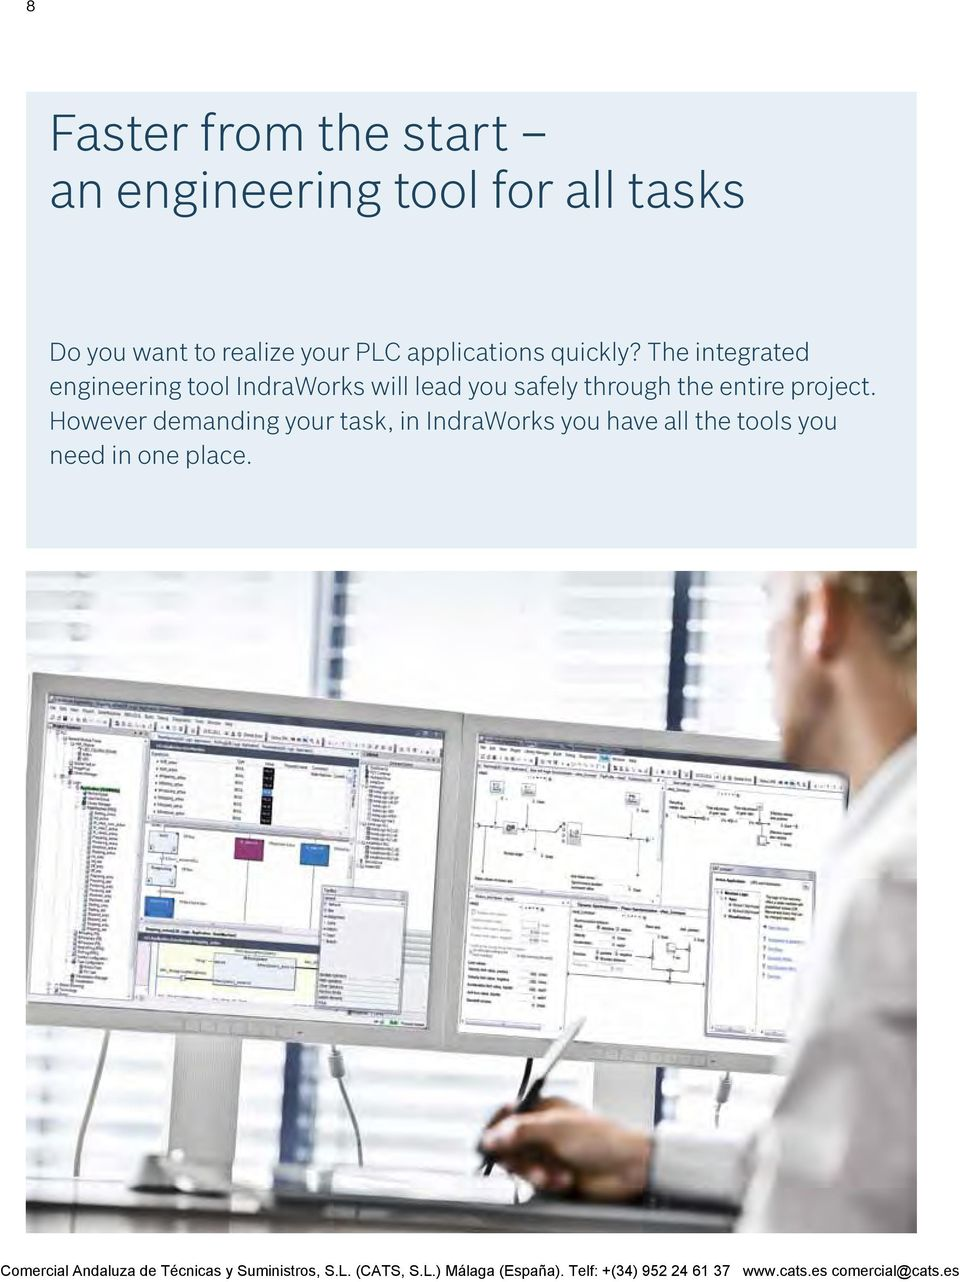 The integrated engineering tool IndraWorks will lead you safely through